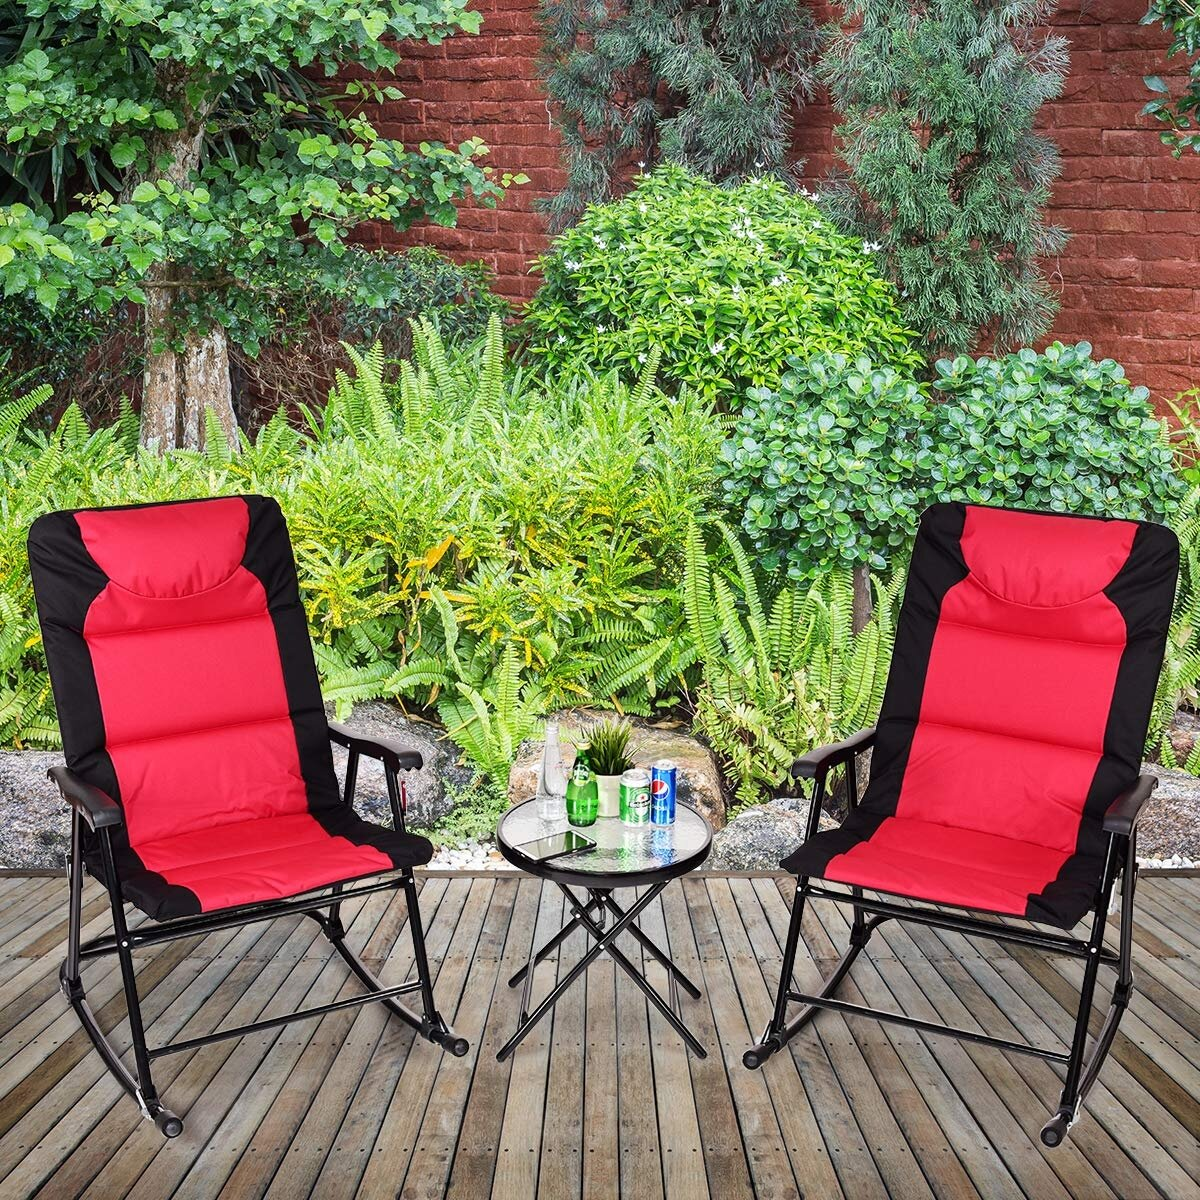 Arlmont Co Lowell Outdoor Rocking 3 Piece Seating Group Wayfair